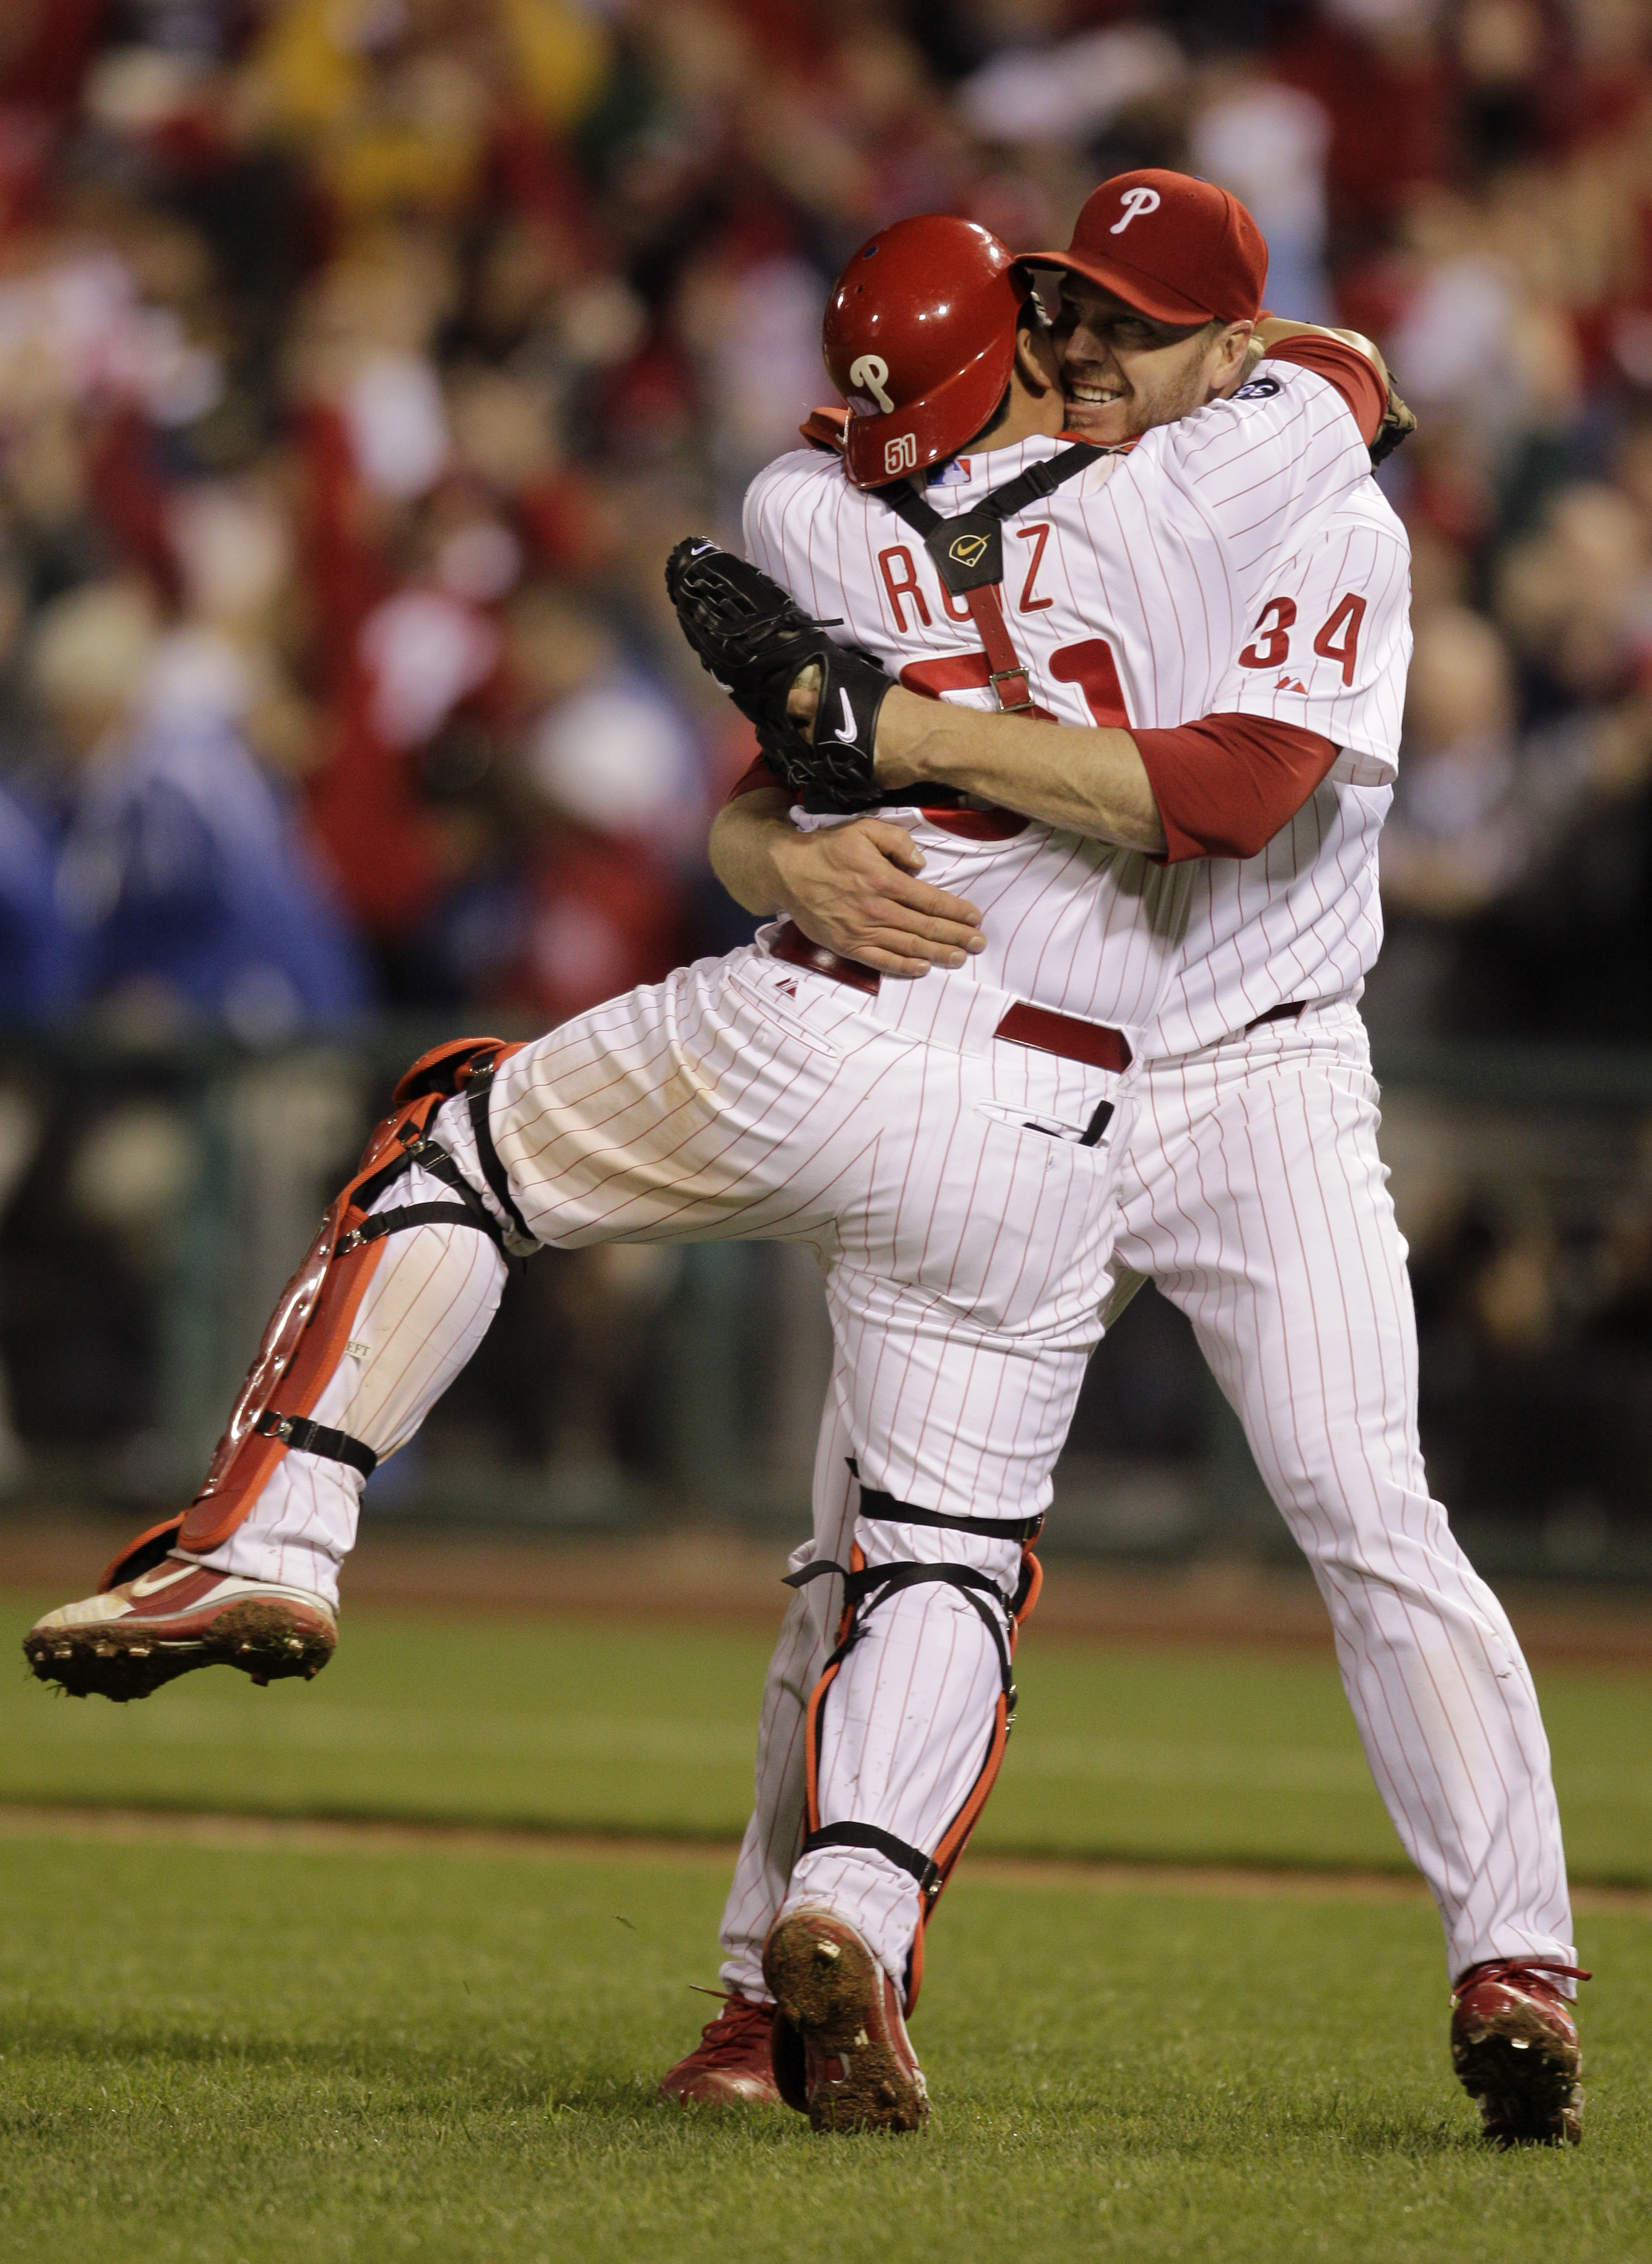 <div class='meta'><div class='origin-logo' data-origin='AP'></div><span class='caption-text' data-credit=''>Roy Halladay and Carlos Ruiz celebrate after Halladay's playoff no-hitter against the Reds in 2010.</span></div>